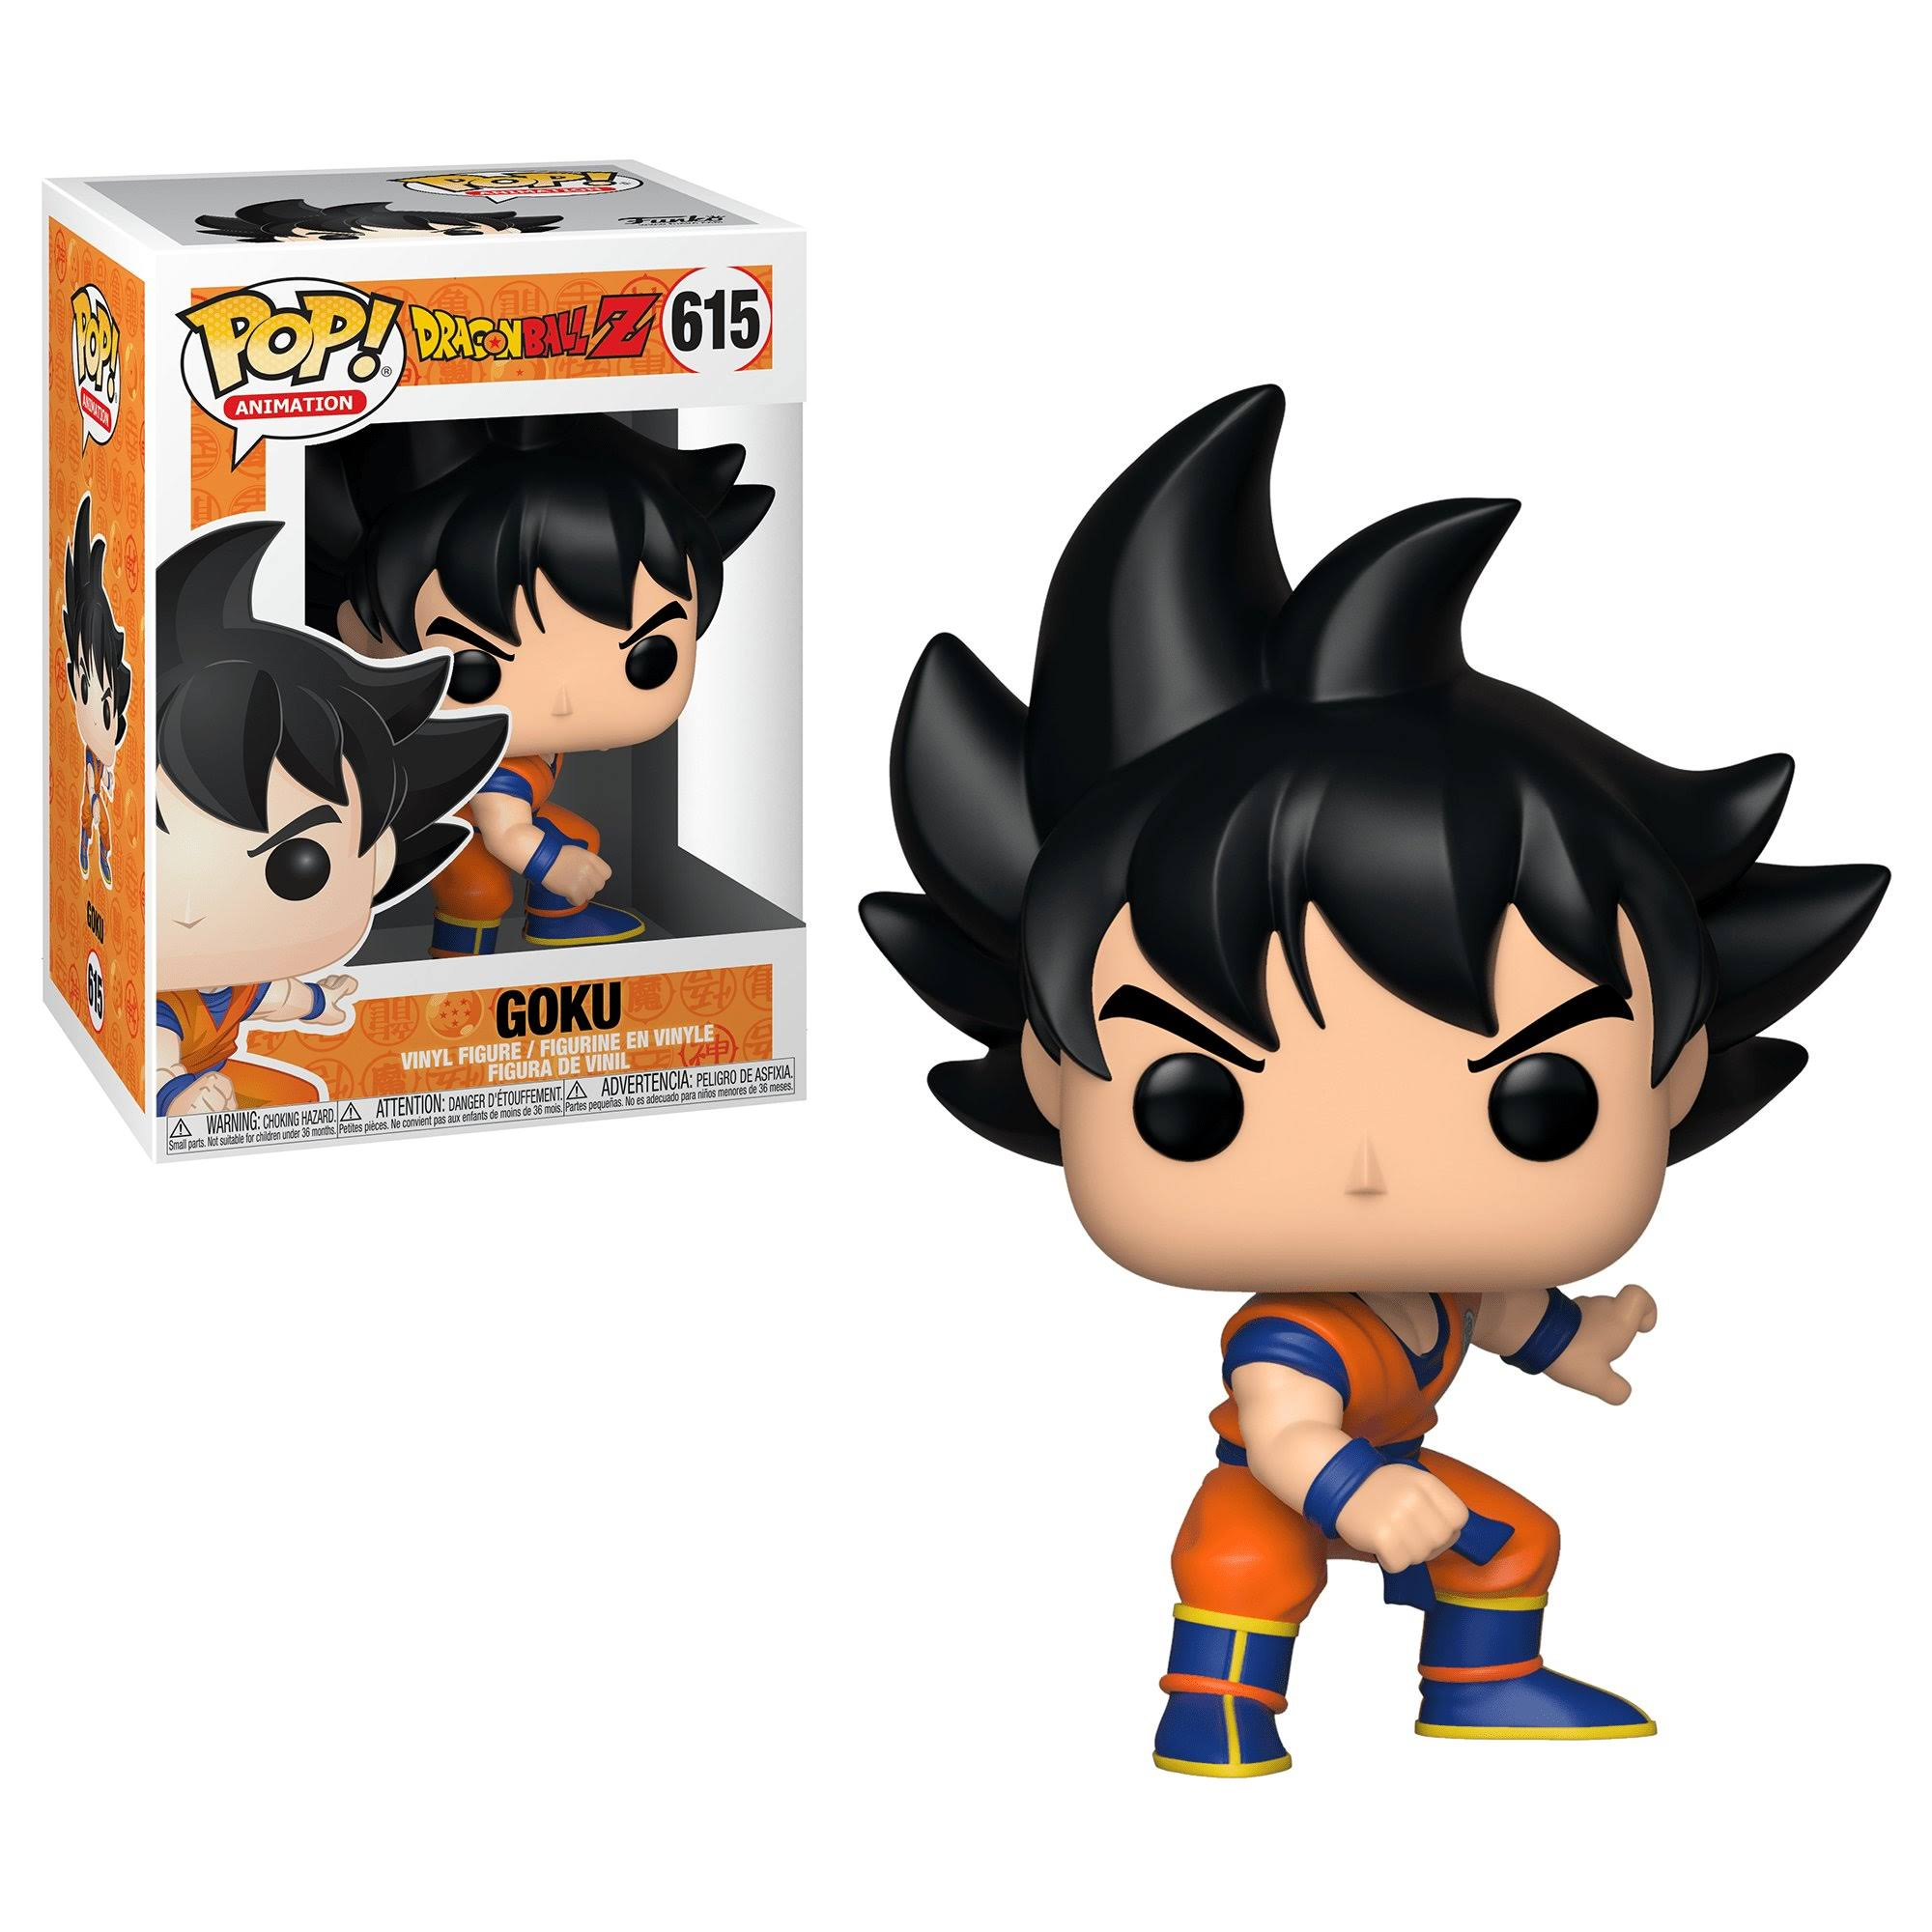 Funko Pop Animation Dragonball Z Vinyl Figure - Goku, 10cm